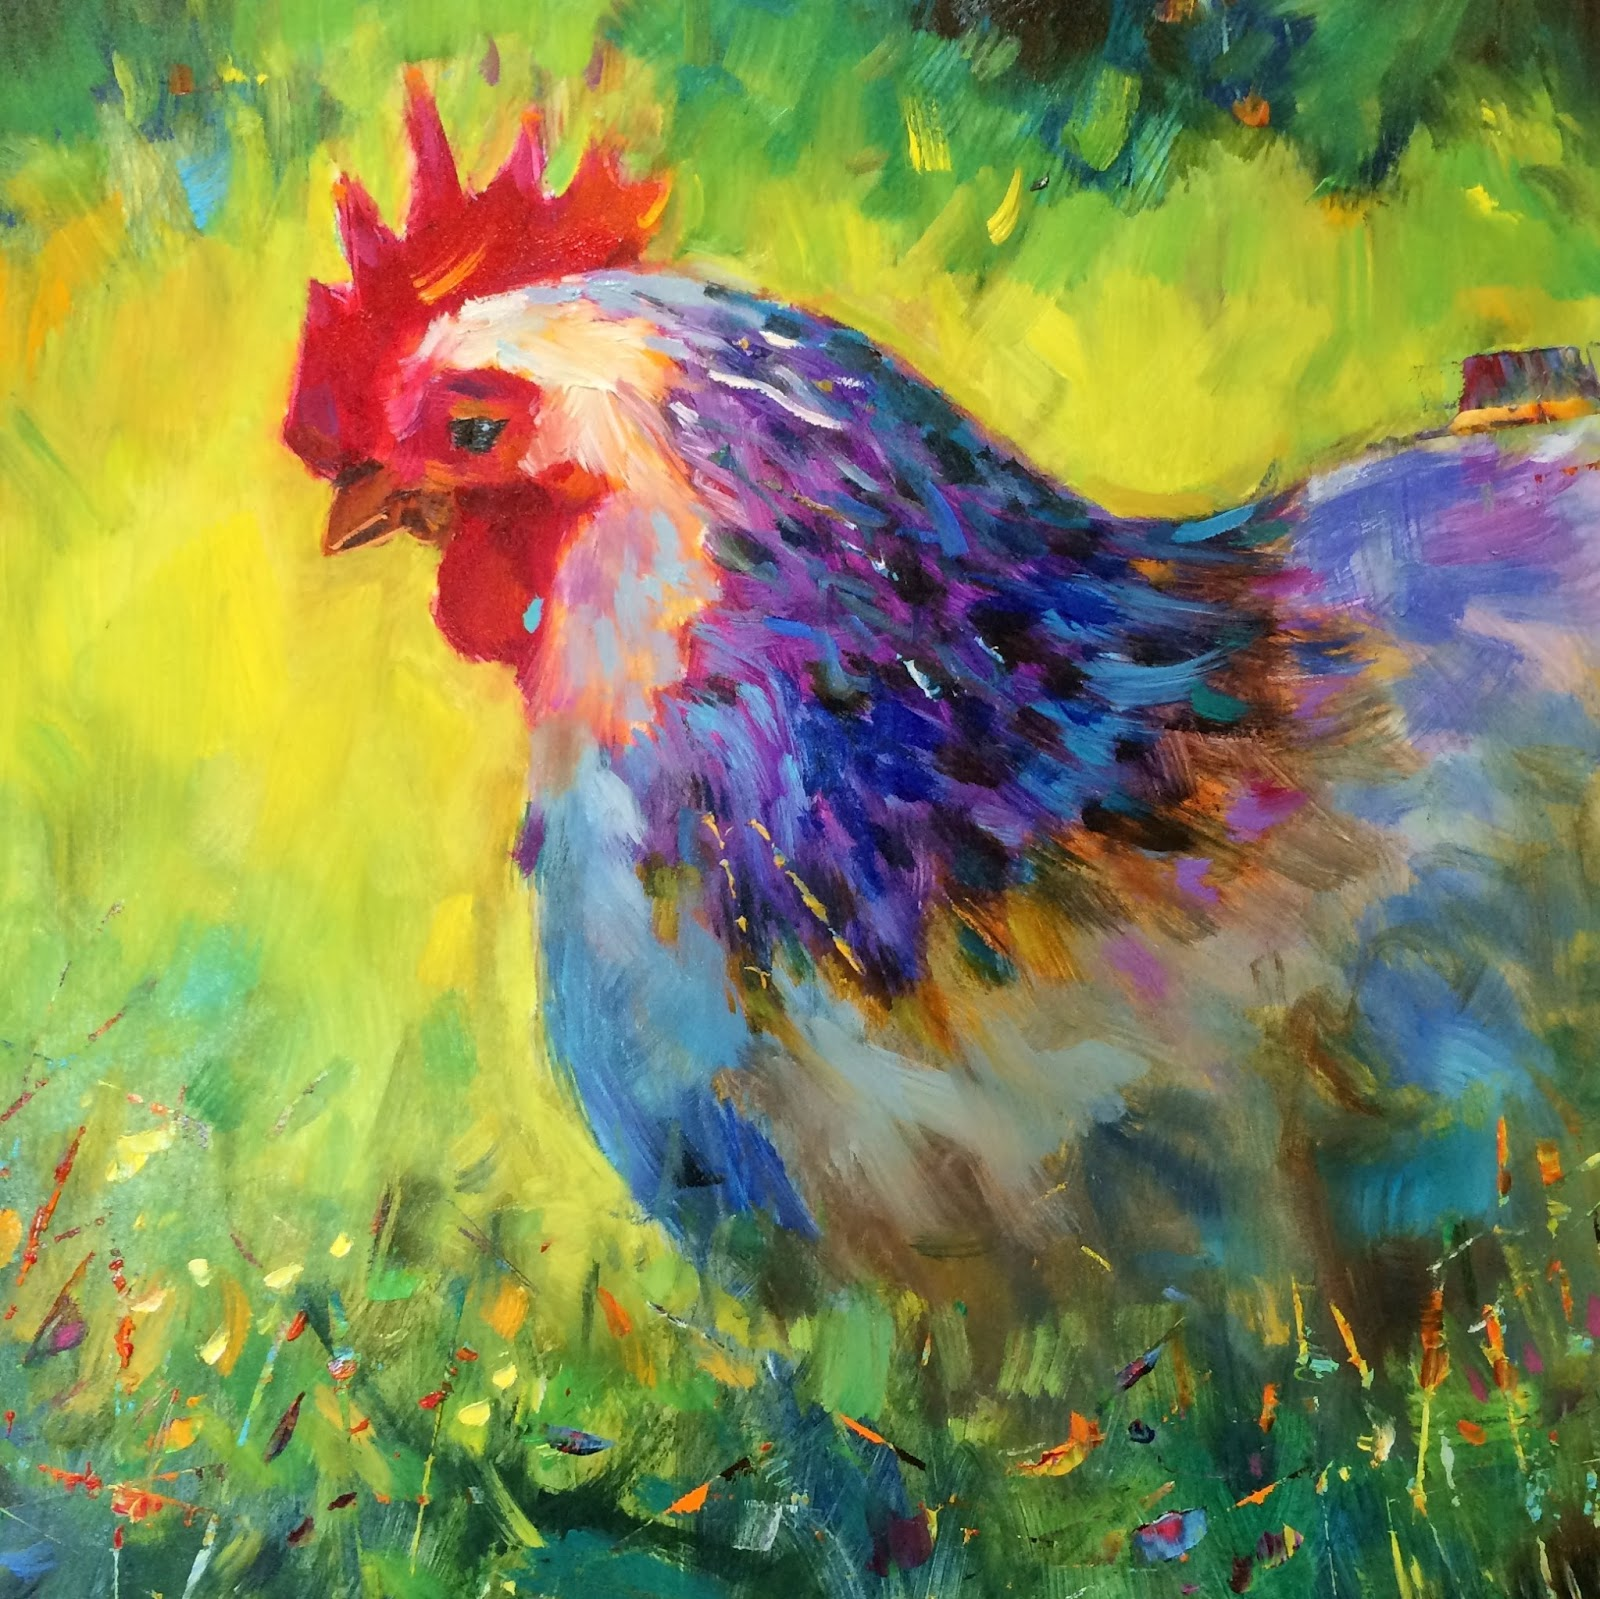 Oil painting workshop Chickens 92